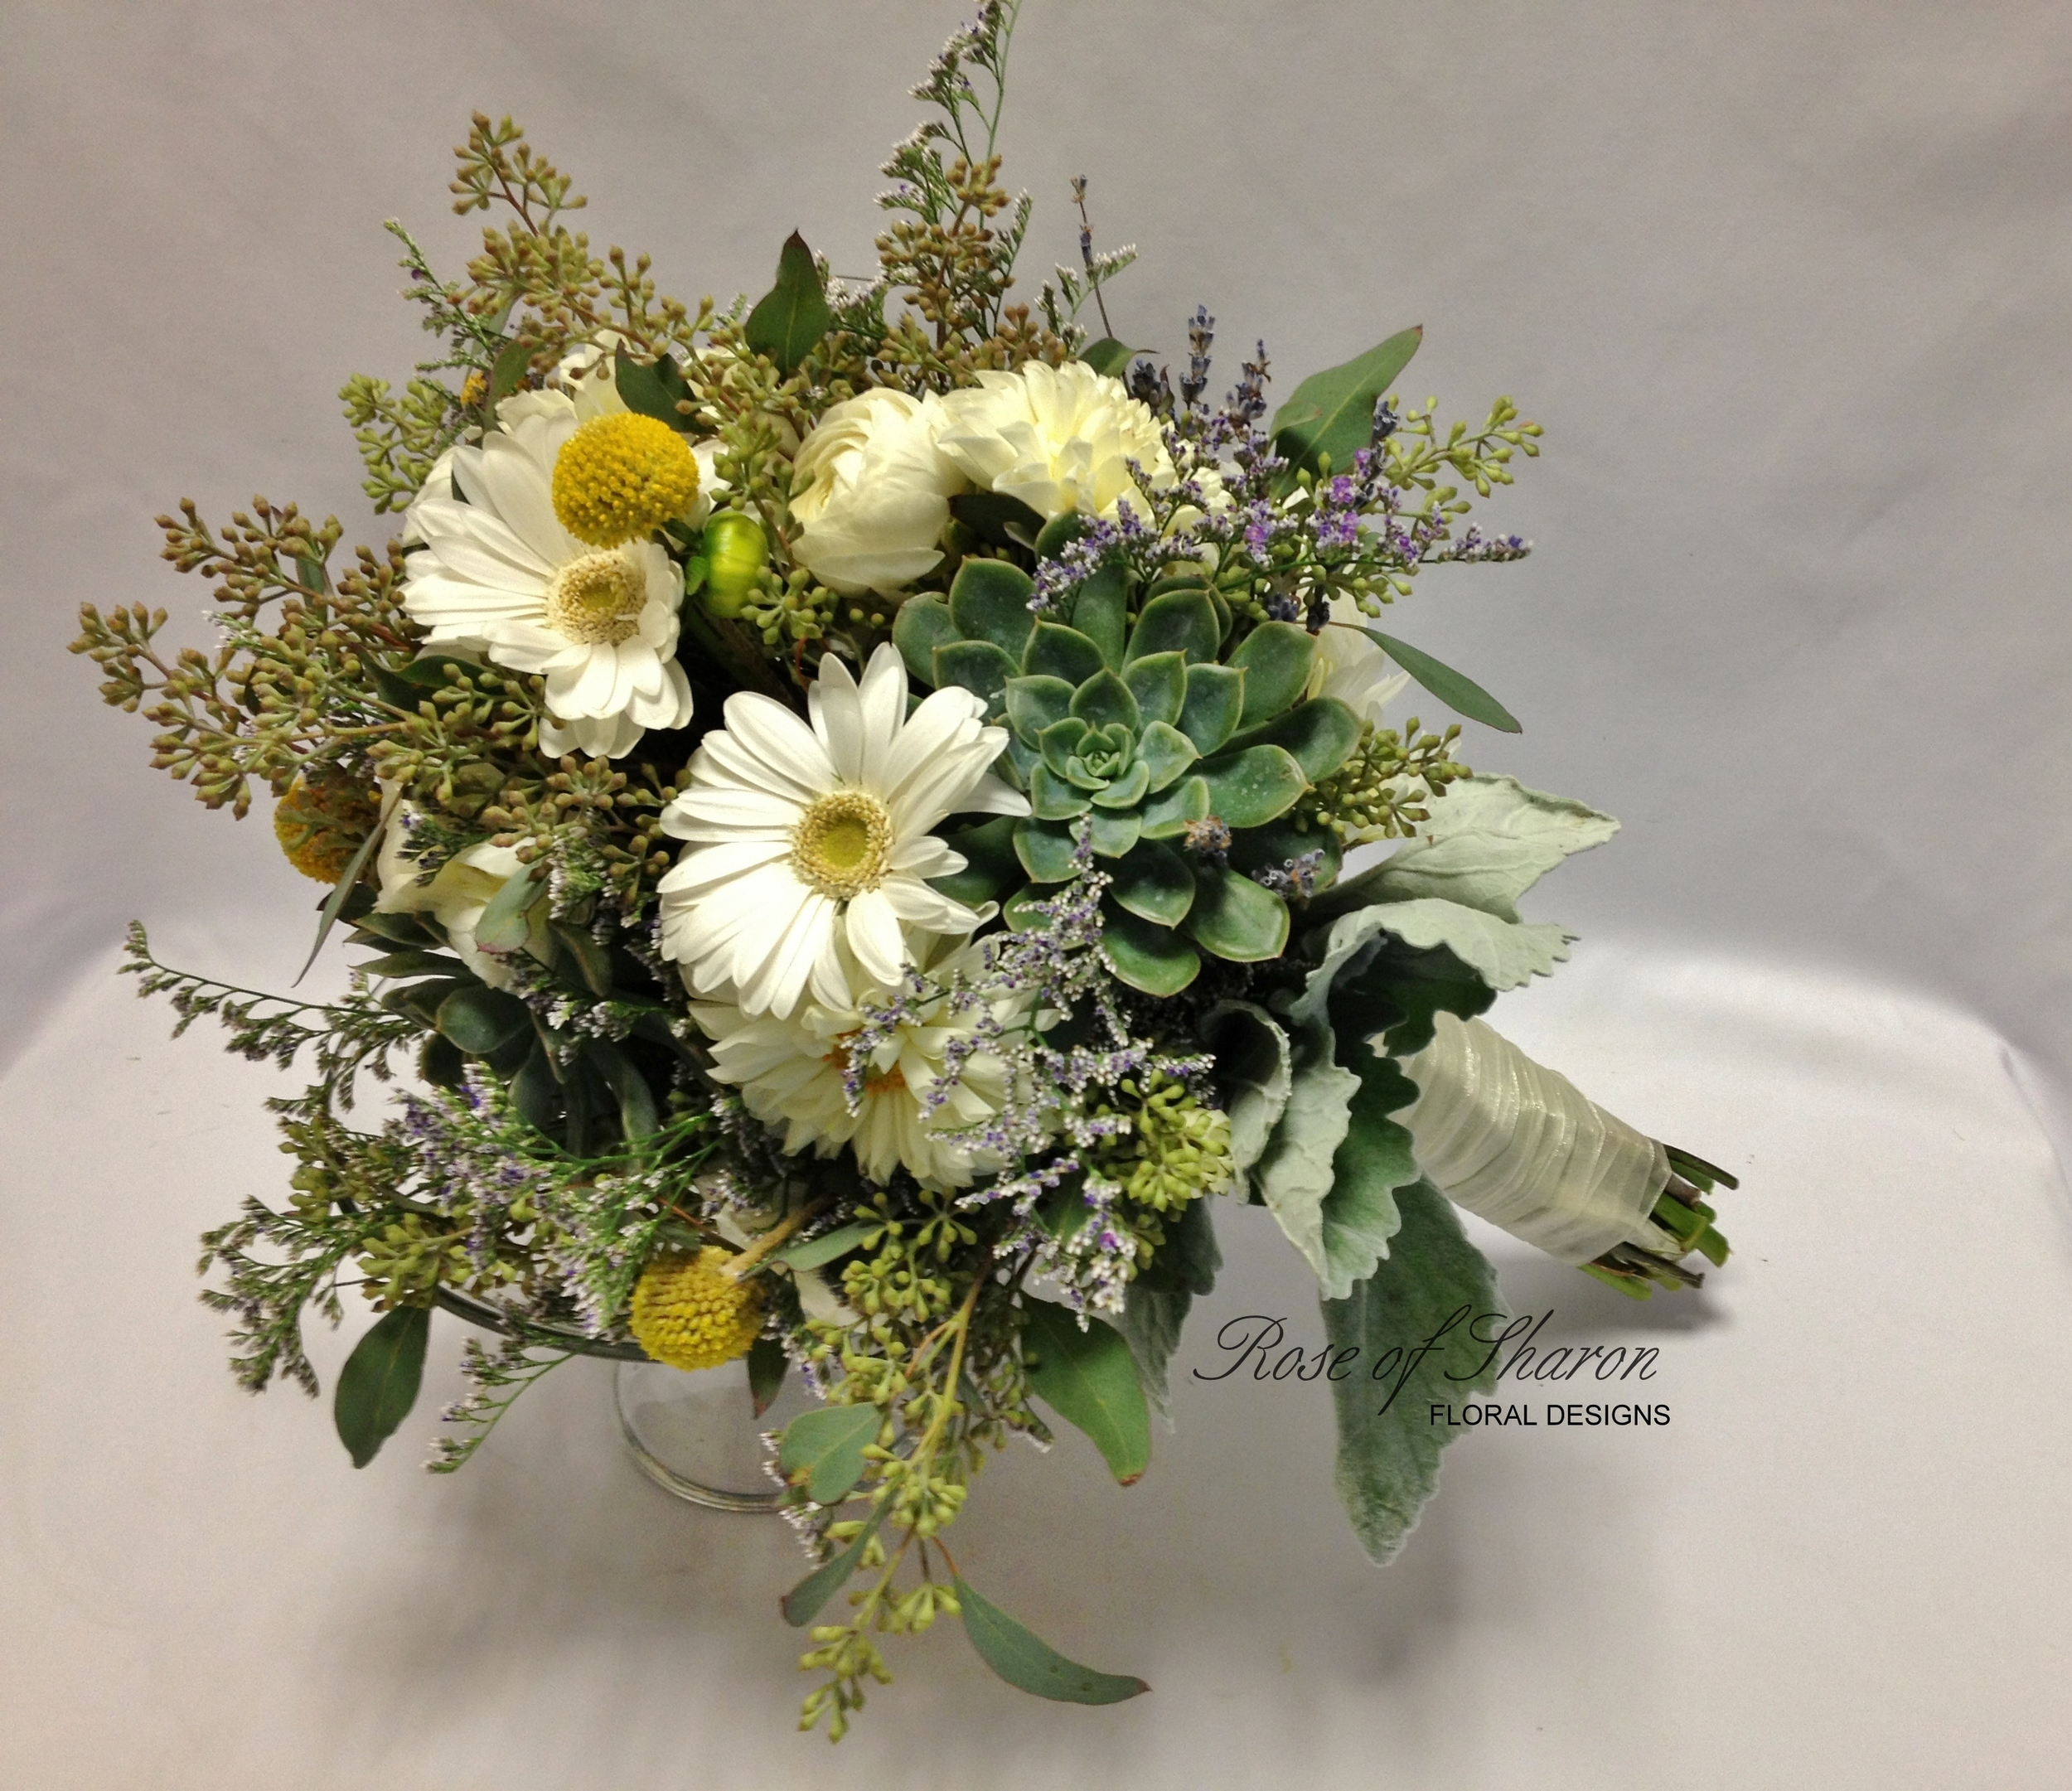 Succulent & gerbera daisy bouquet with billy balls & eucalyptus. Rose of Sharon Floral Designs